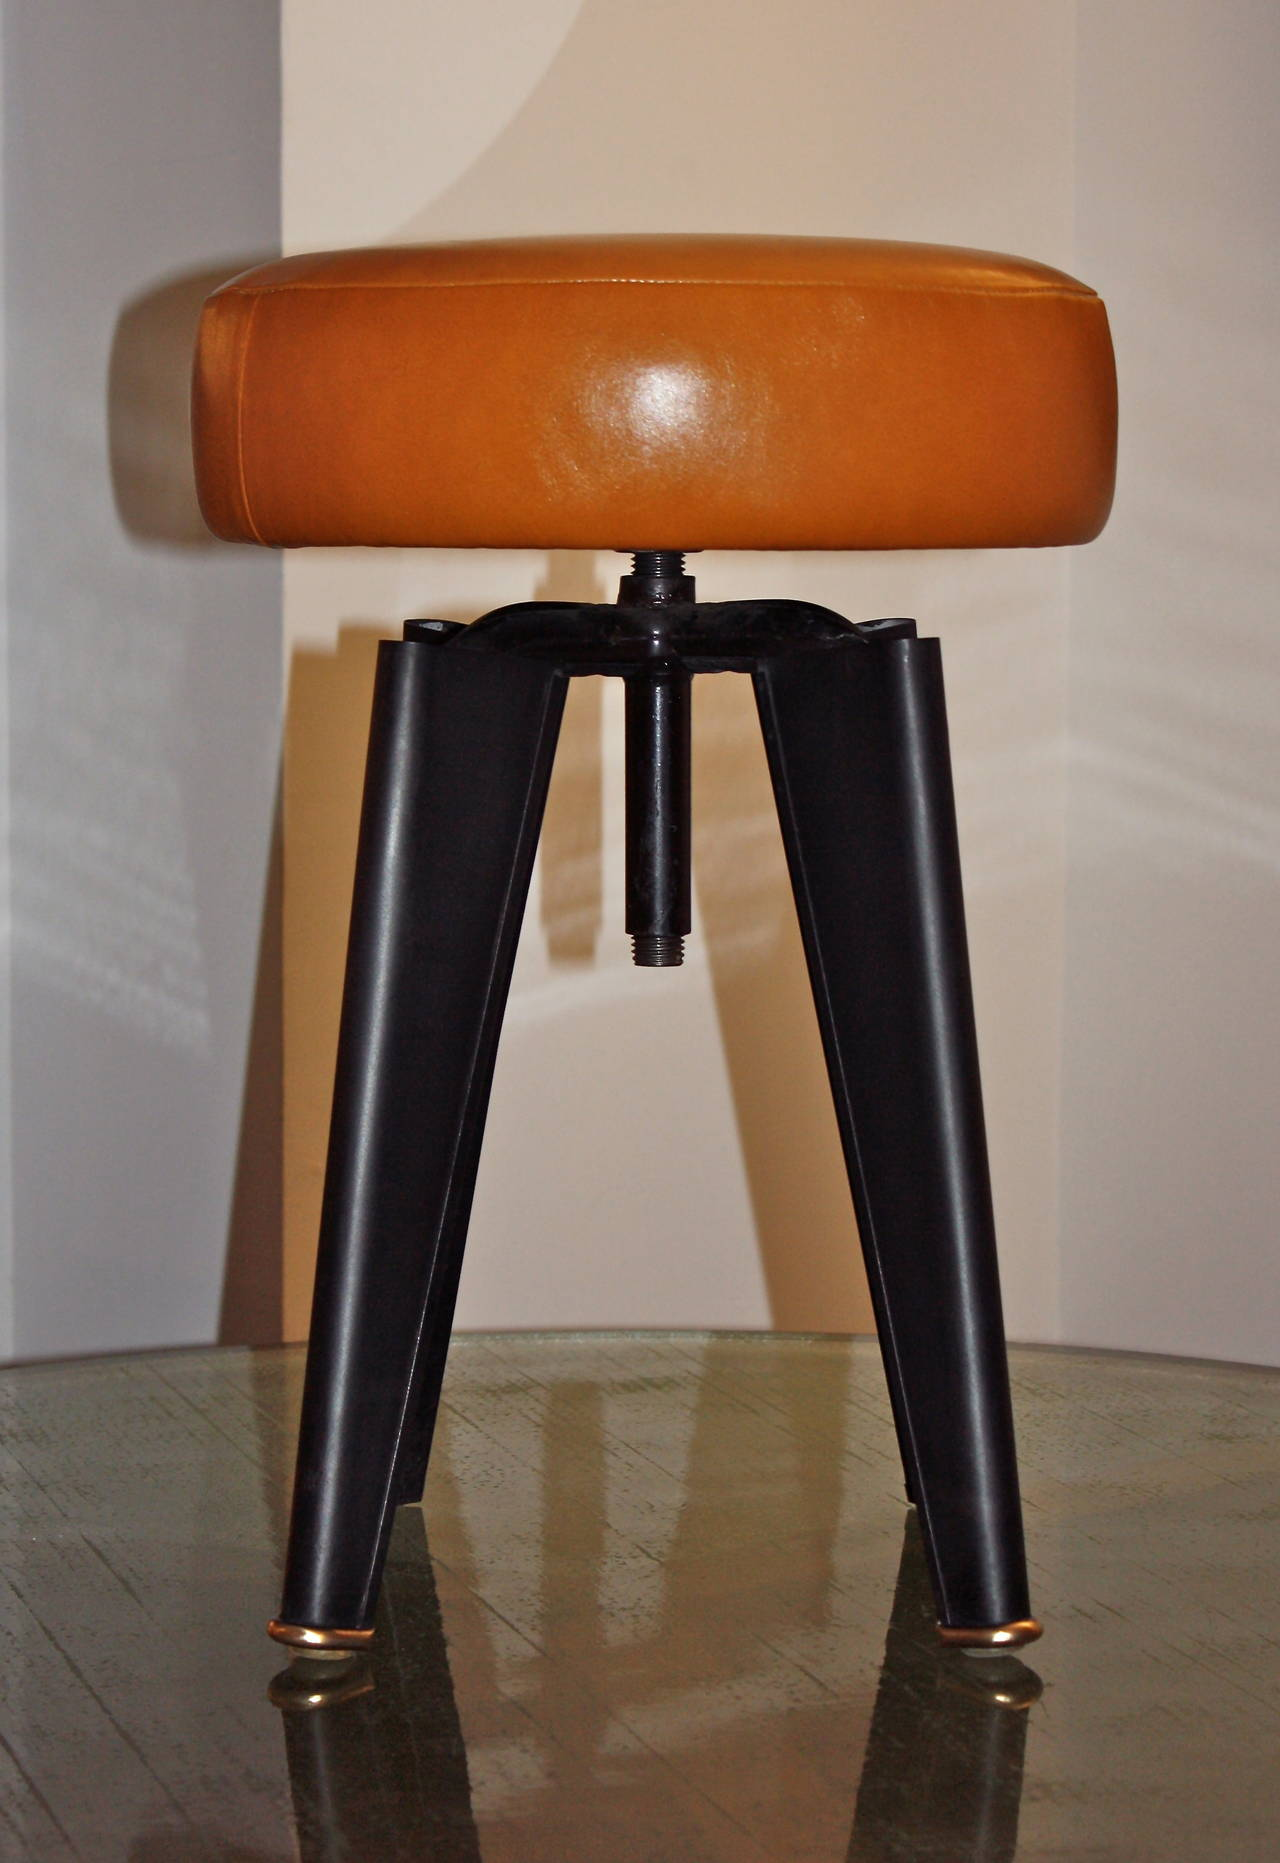 Pair of Piano Stools by Dominique for the Clemenceau Aircraft Carrier 2